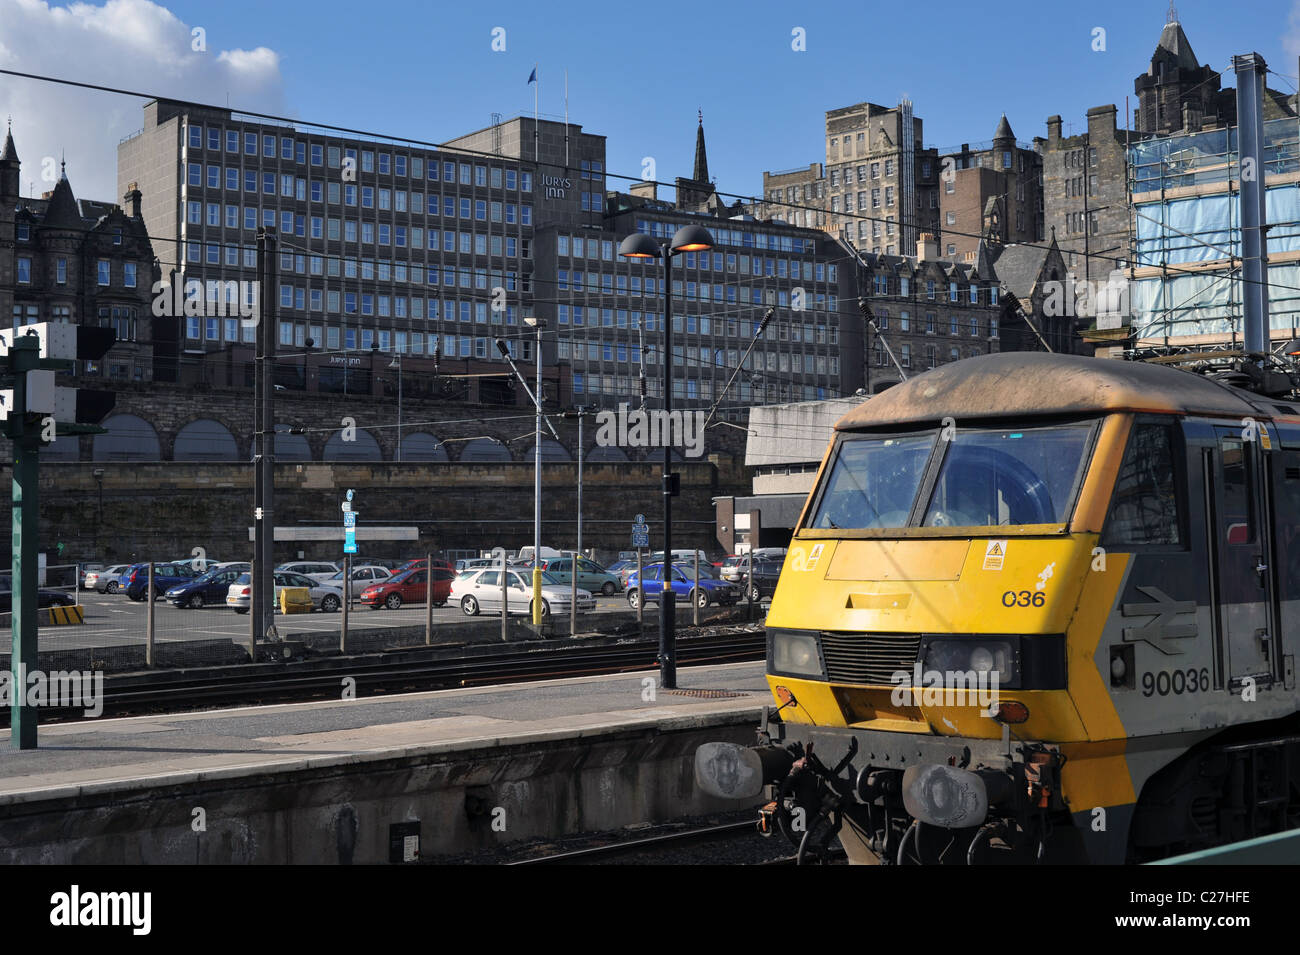 Jury's Inn Hotel Edinburgh from Waverley Train Station showing Scotrail train - Stock Image